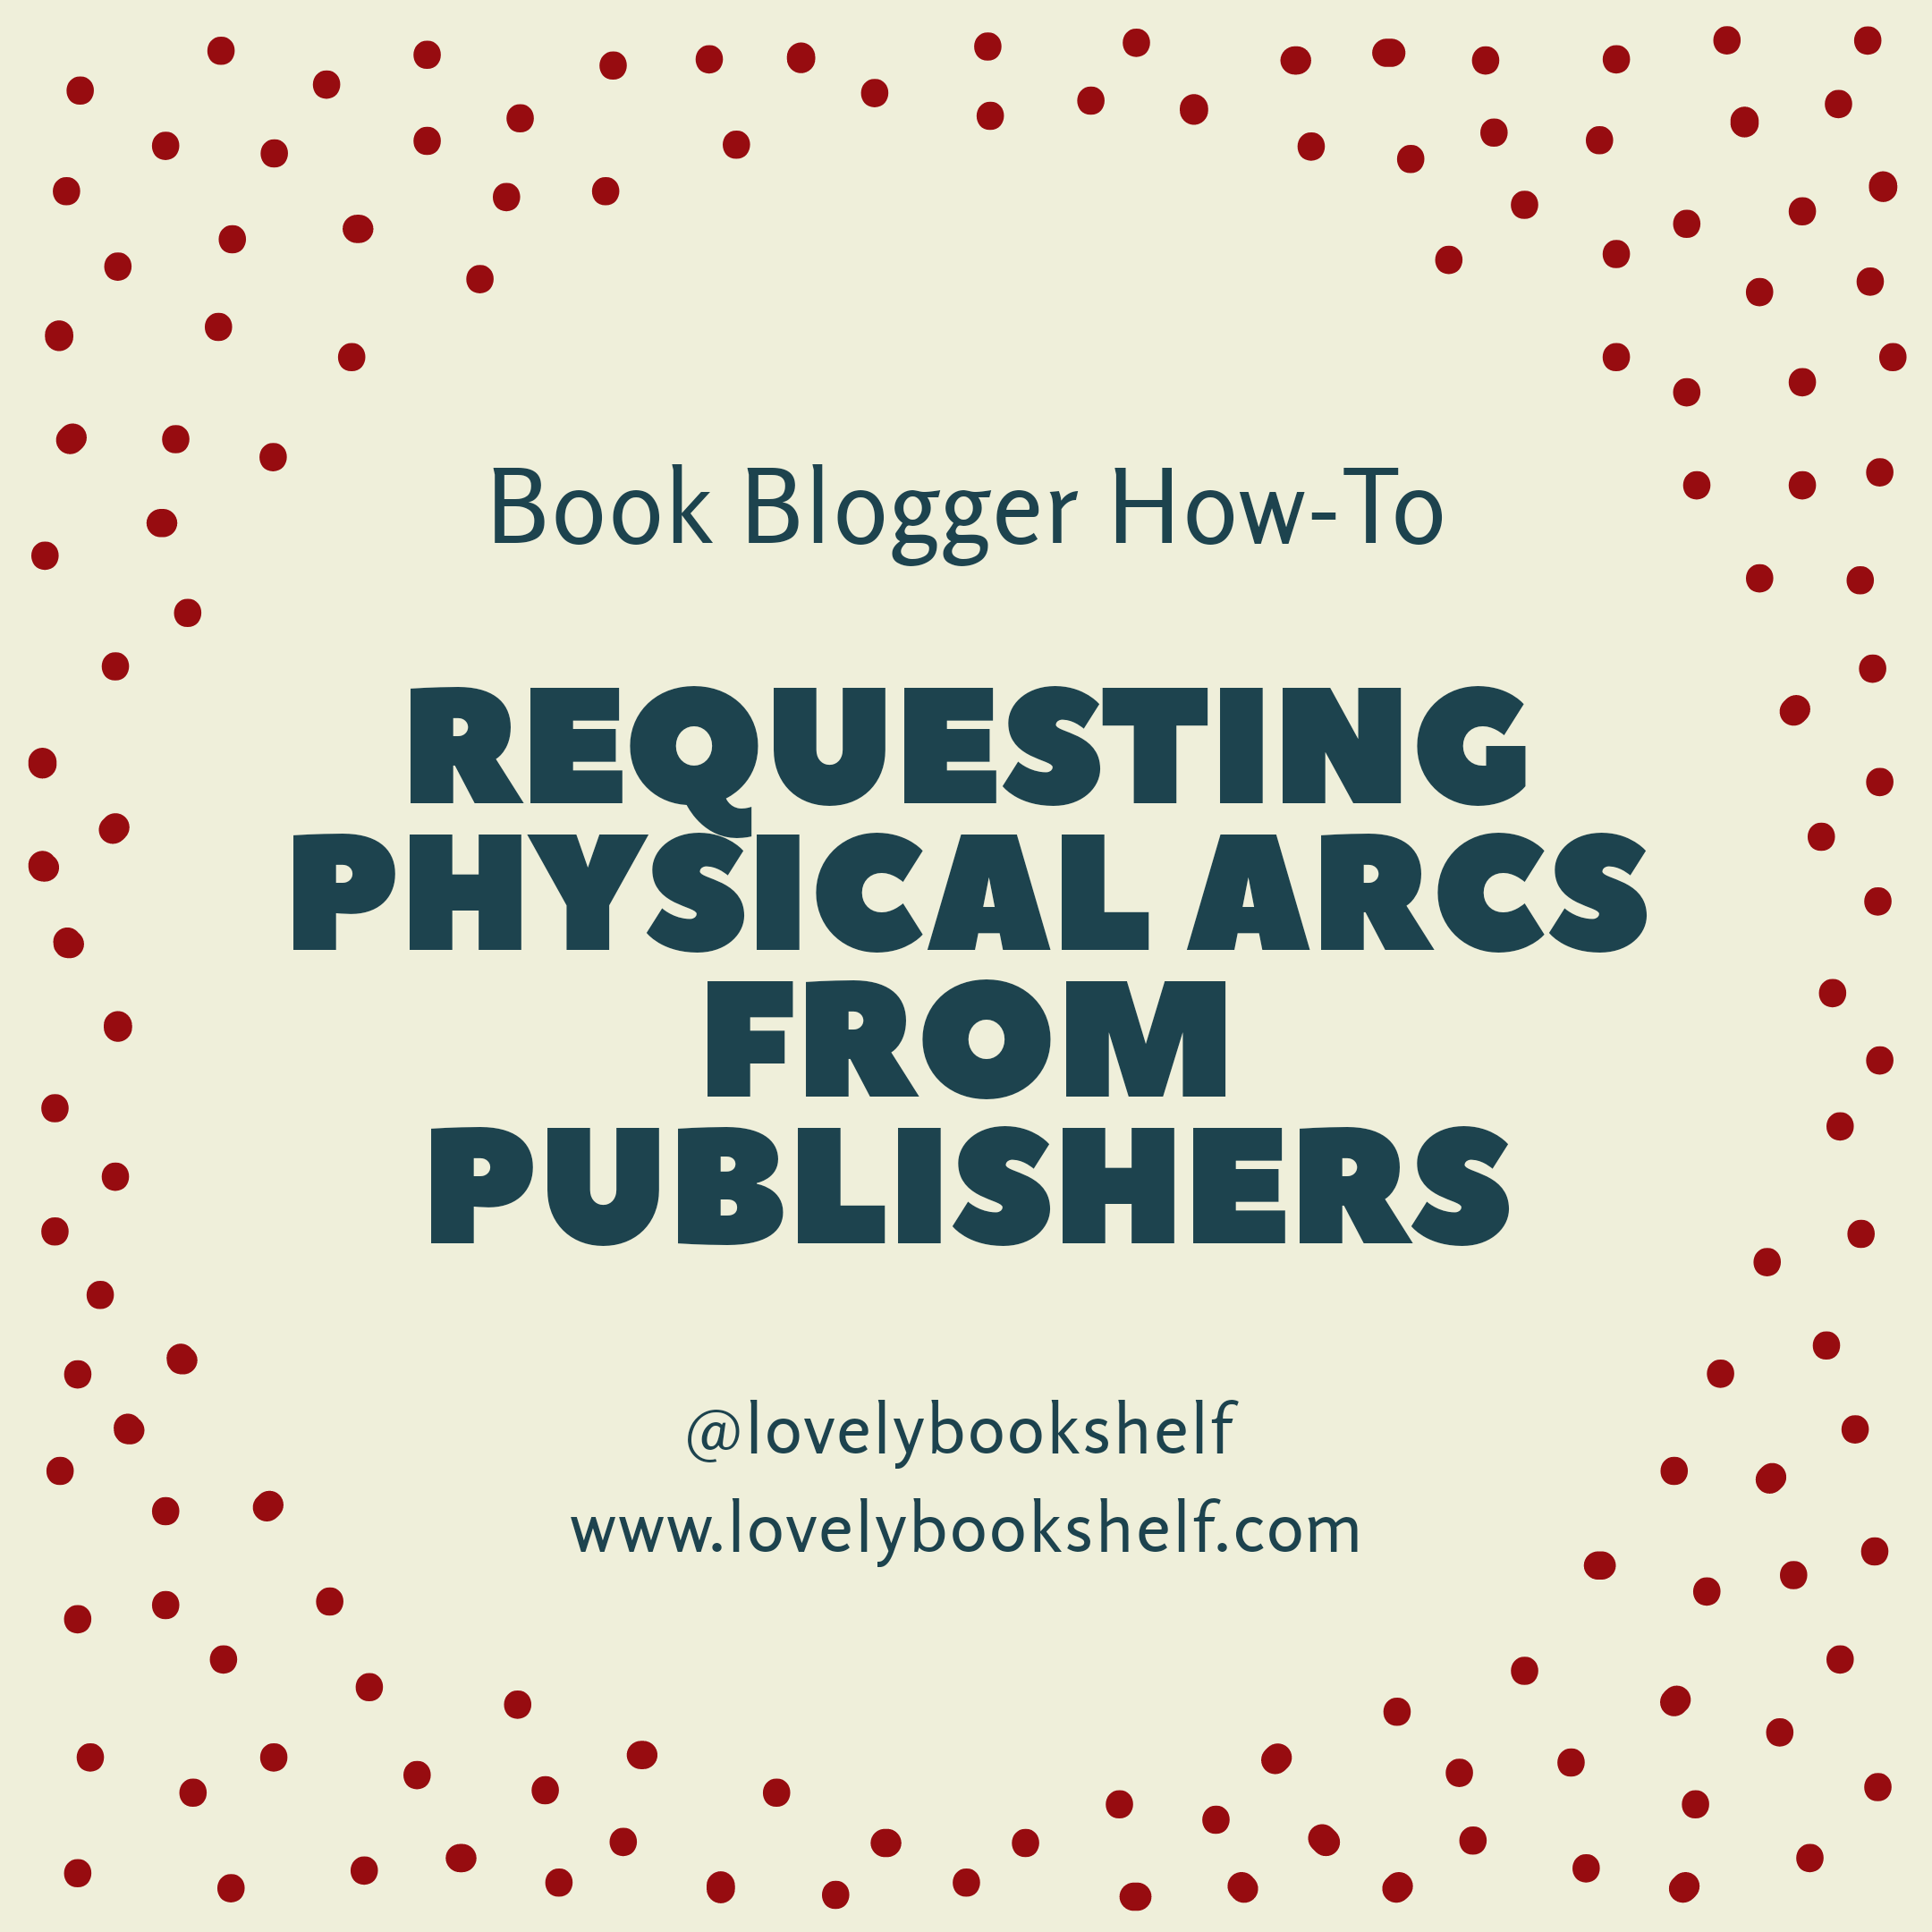 Book Blogger How-To: Requesting Physical ARCs from Publishers